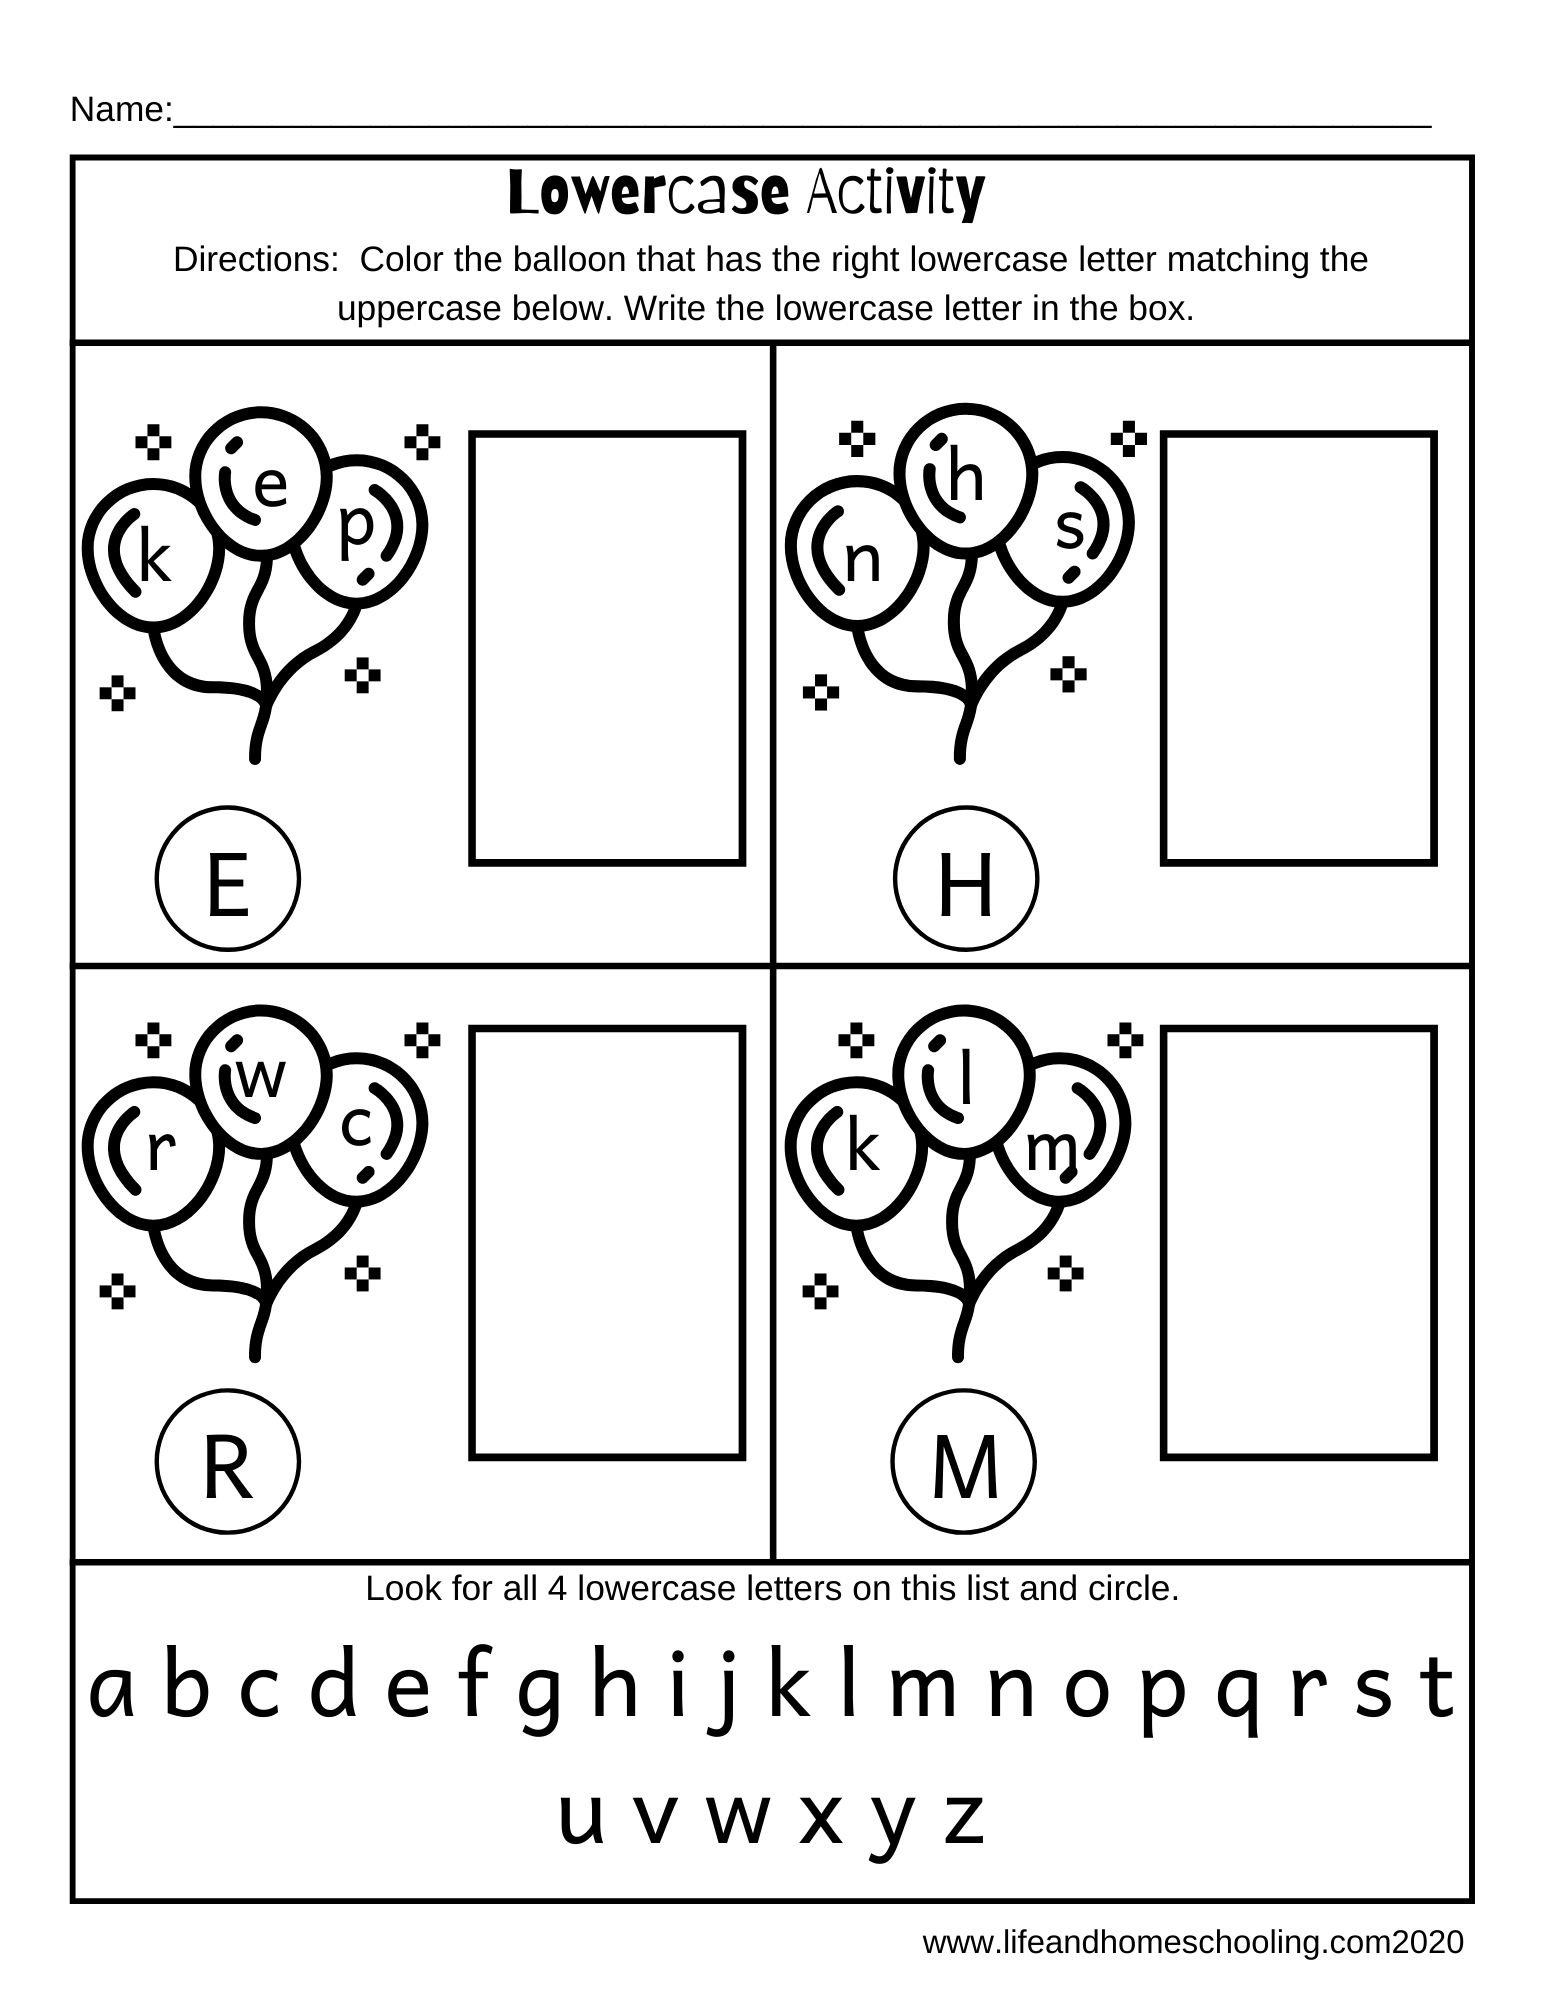 Preschool Kindergarten Lowercase Worksheet